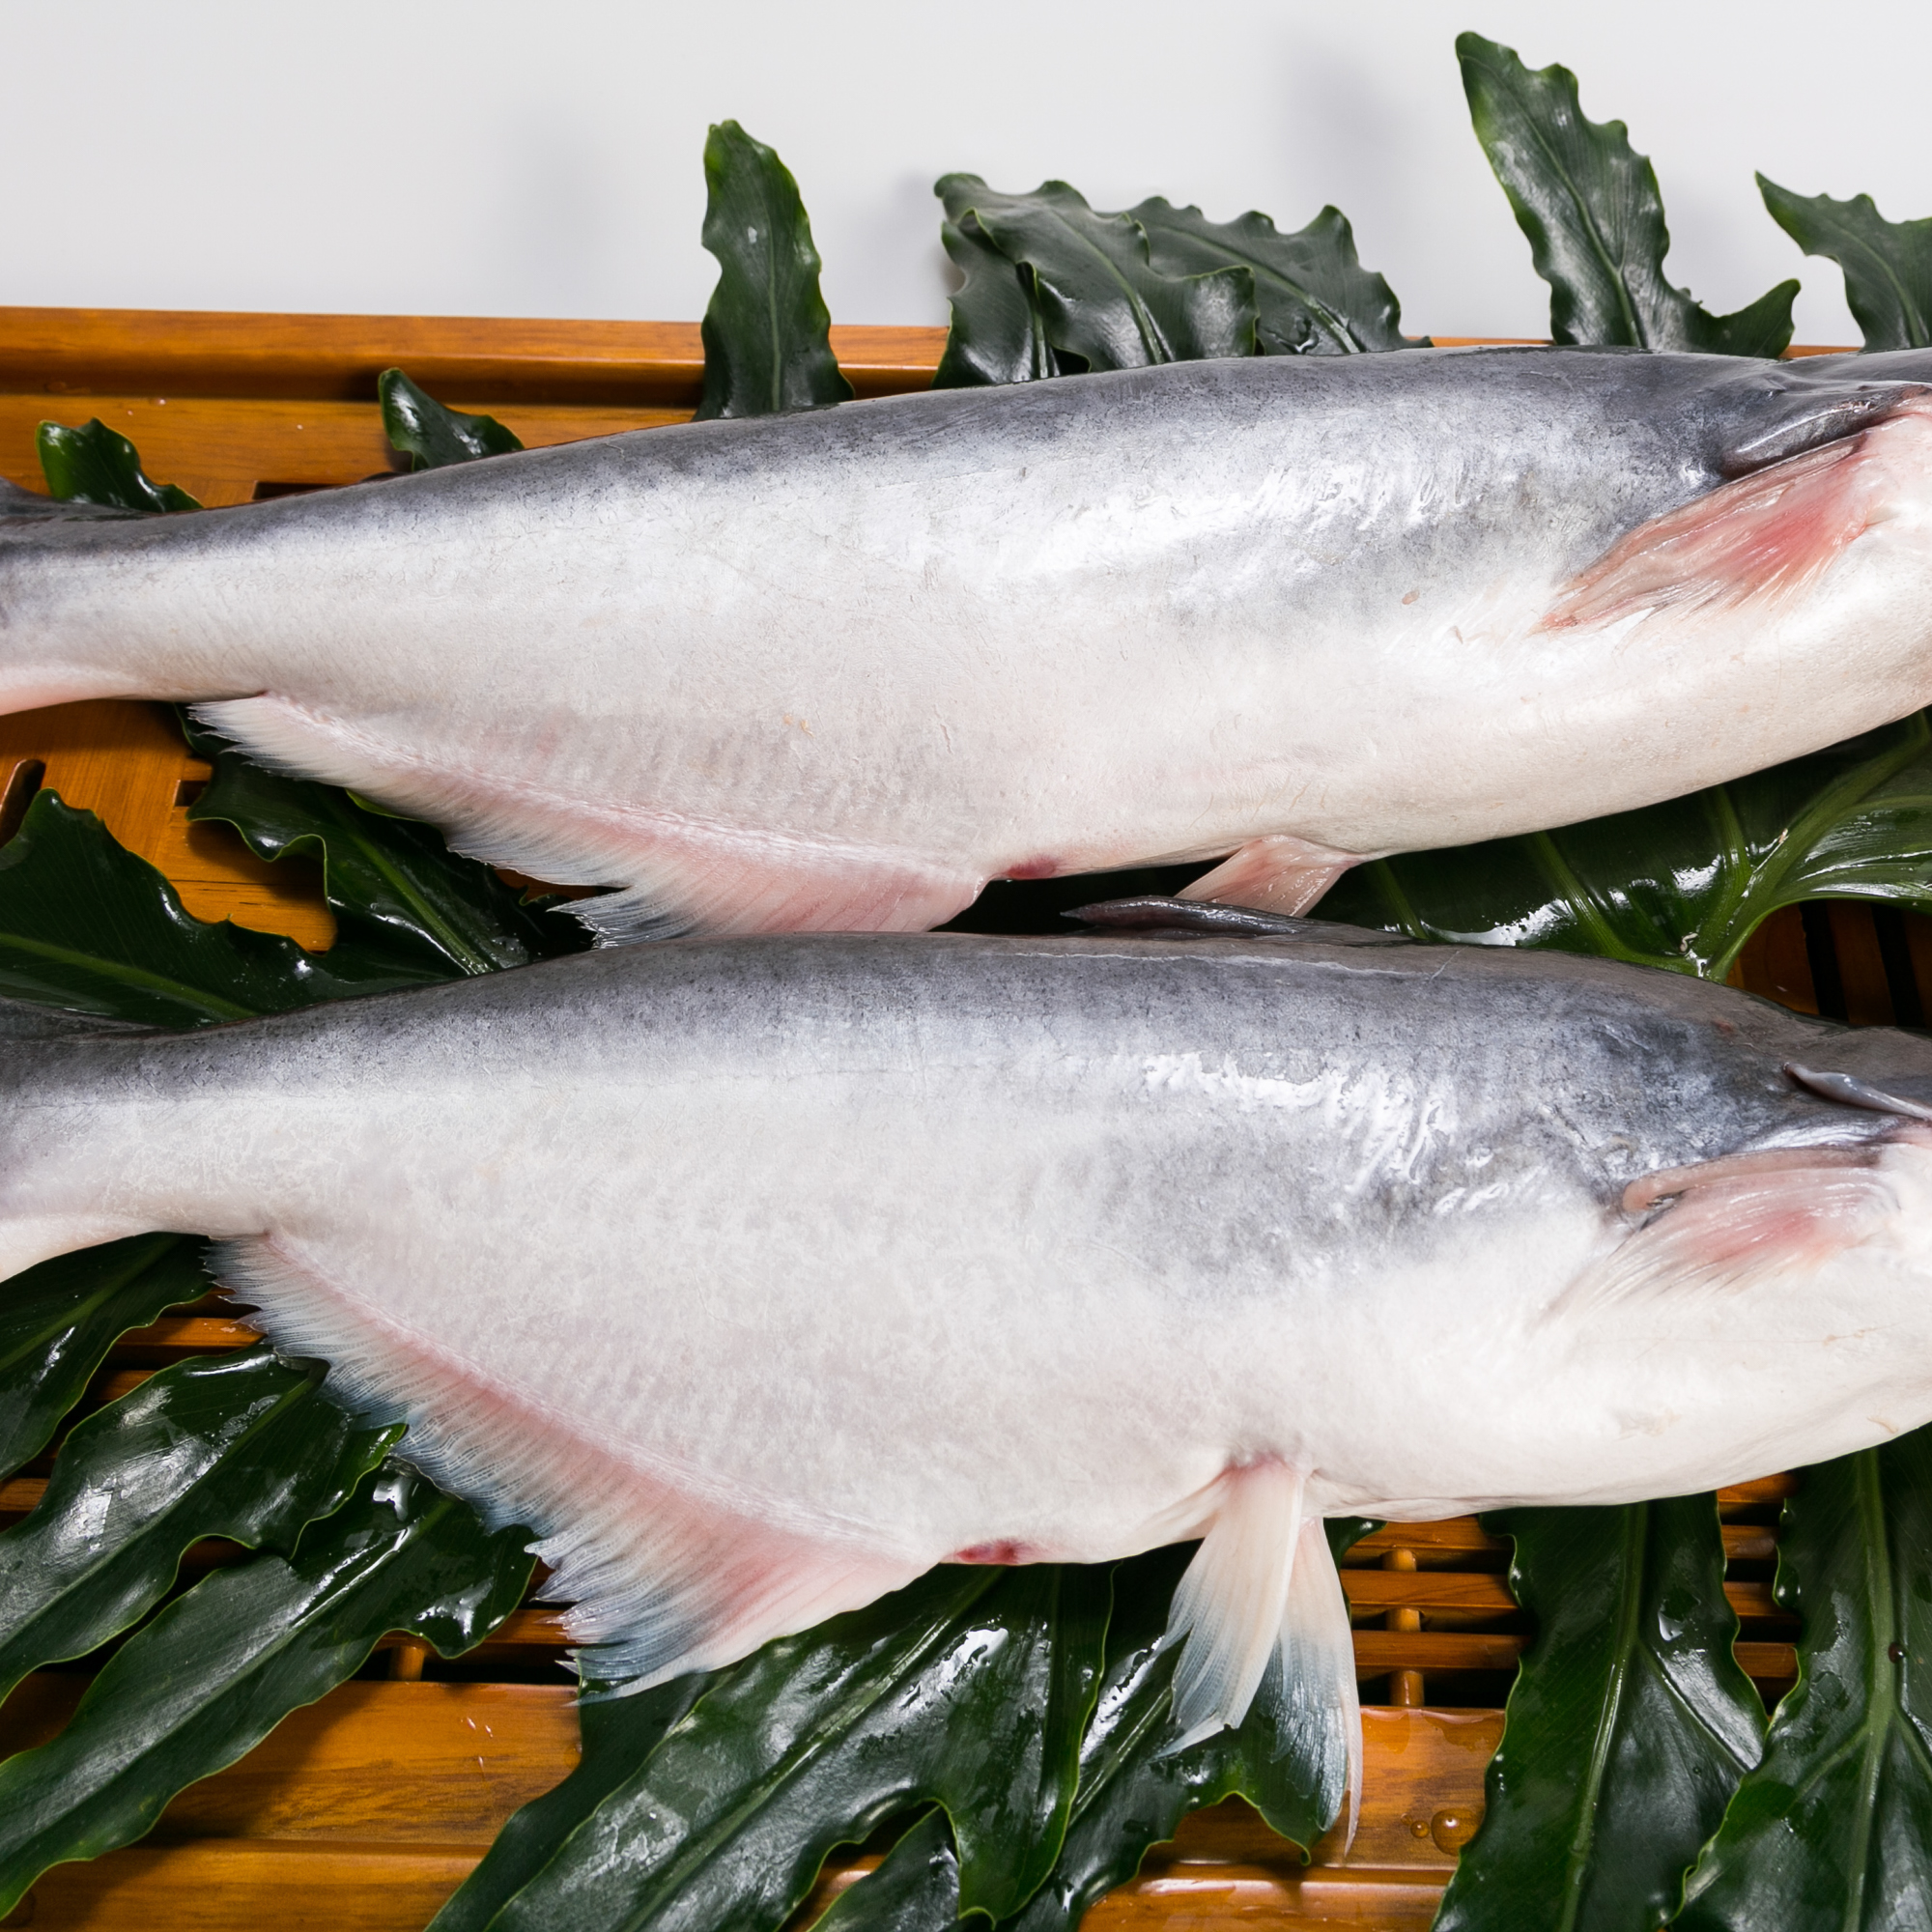 10kg Whole Round Pangasius Fish With Shelf Life 24 Months made From Mekong Delta Vietnam